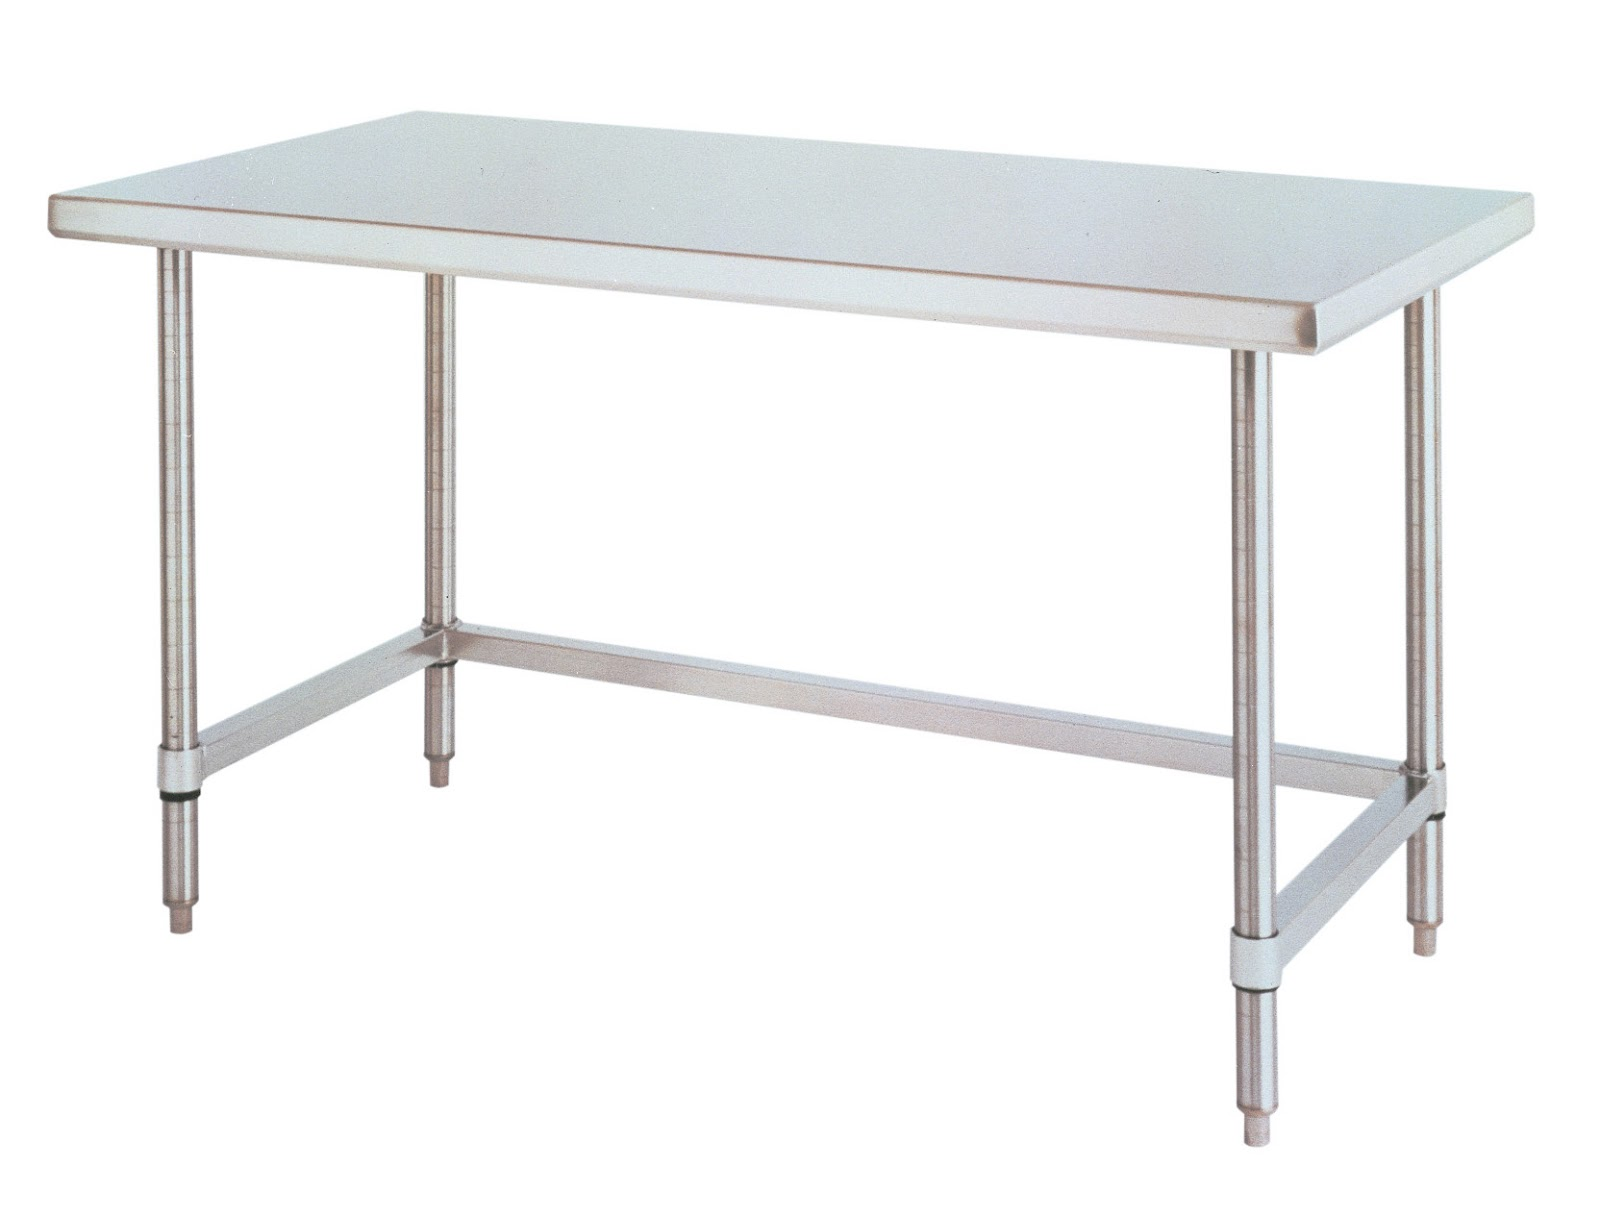 Kitchen Prep Table Stainless Steel